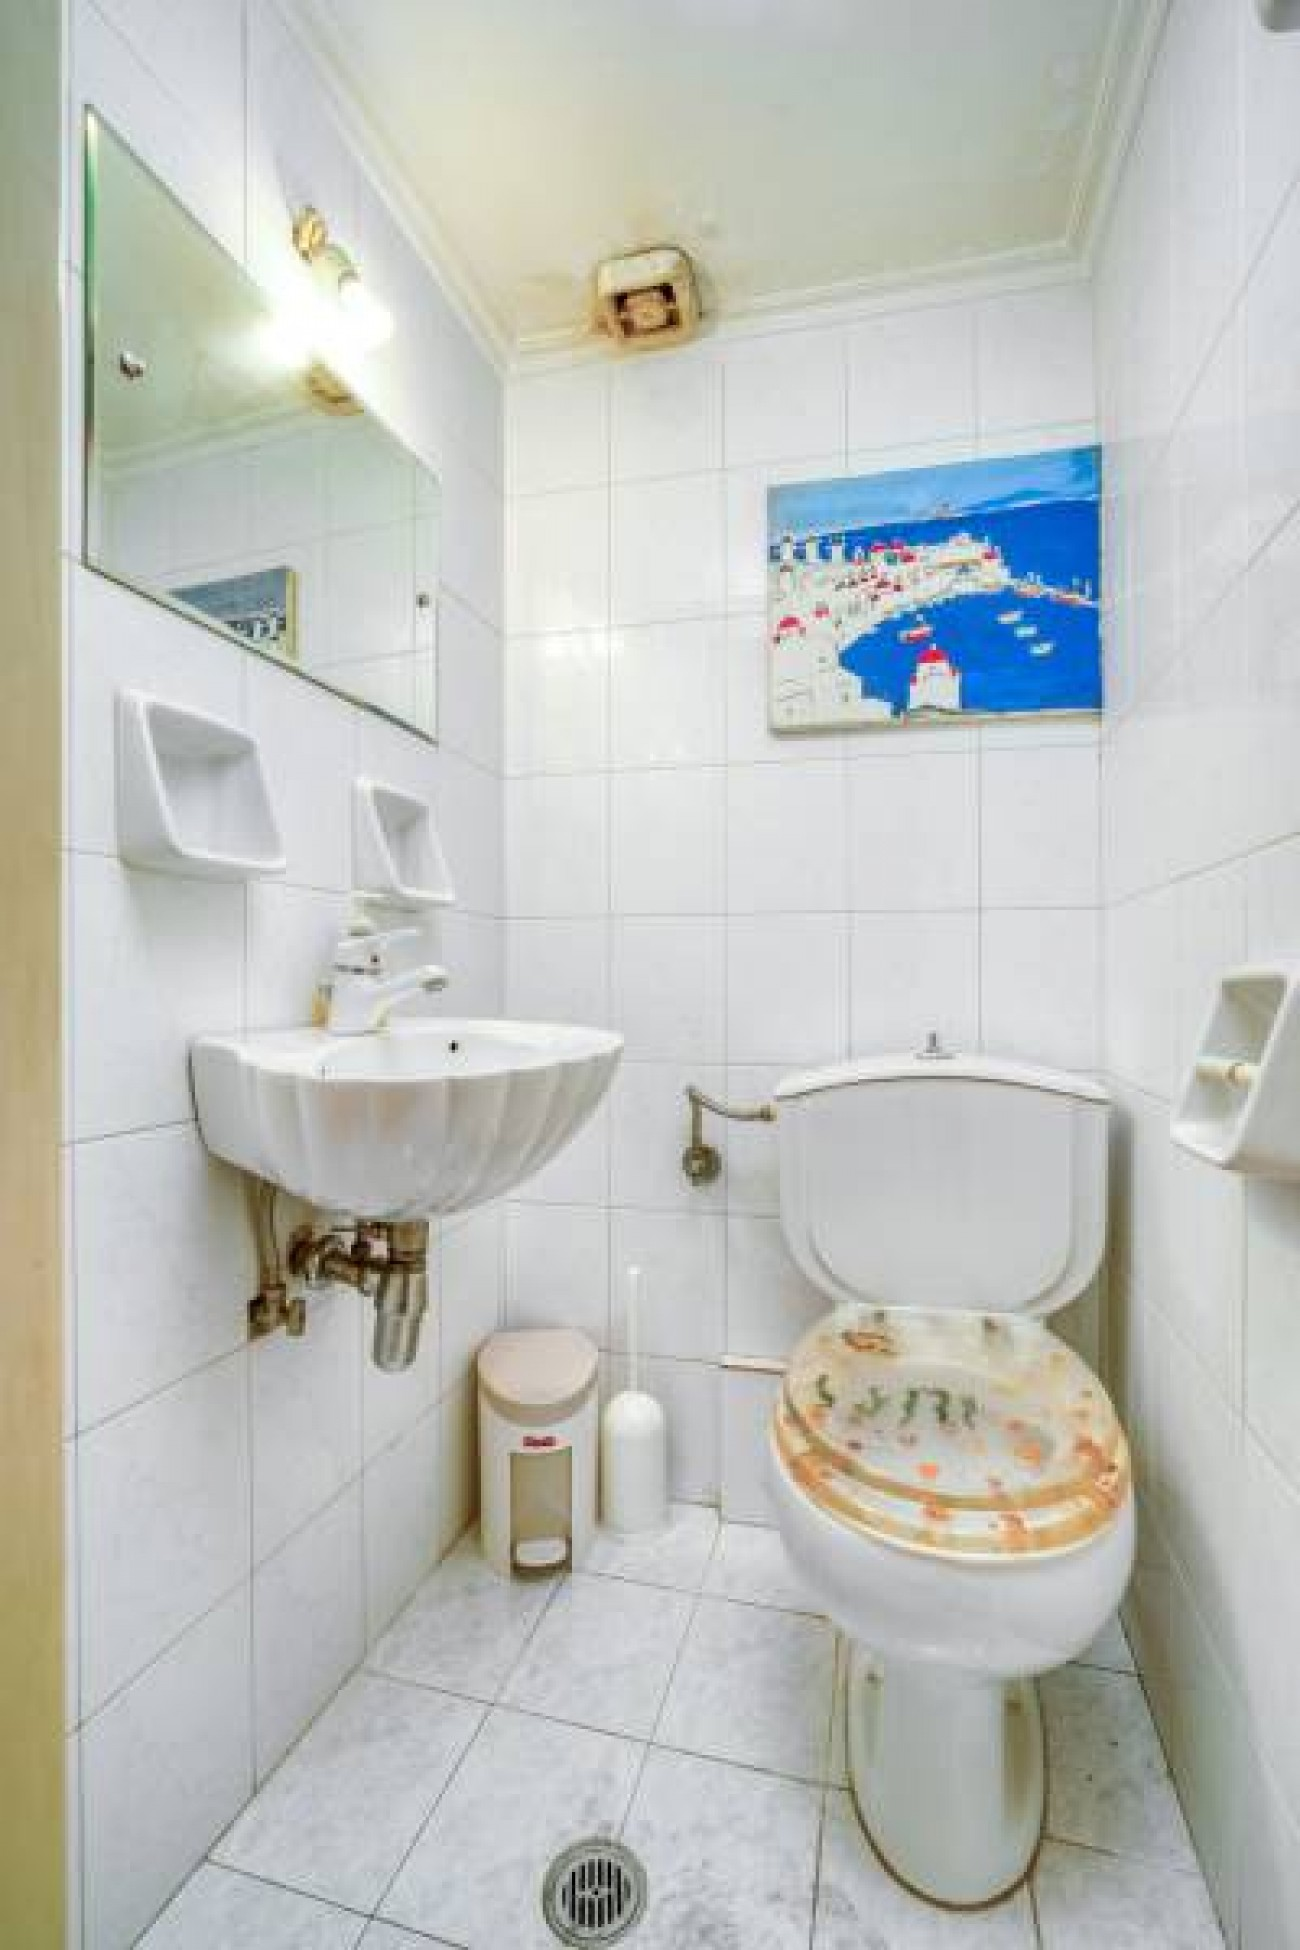 Apartment for Sale in Northern & Eastern Suburbs, Prefecture of Attica